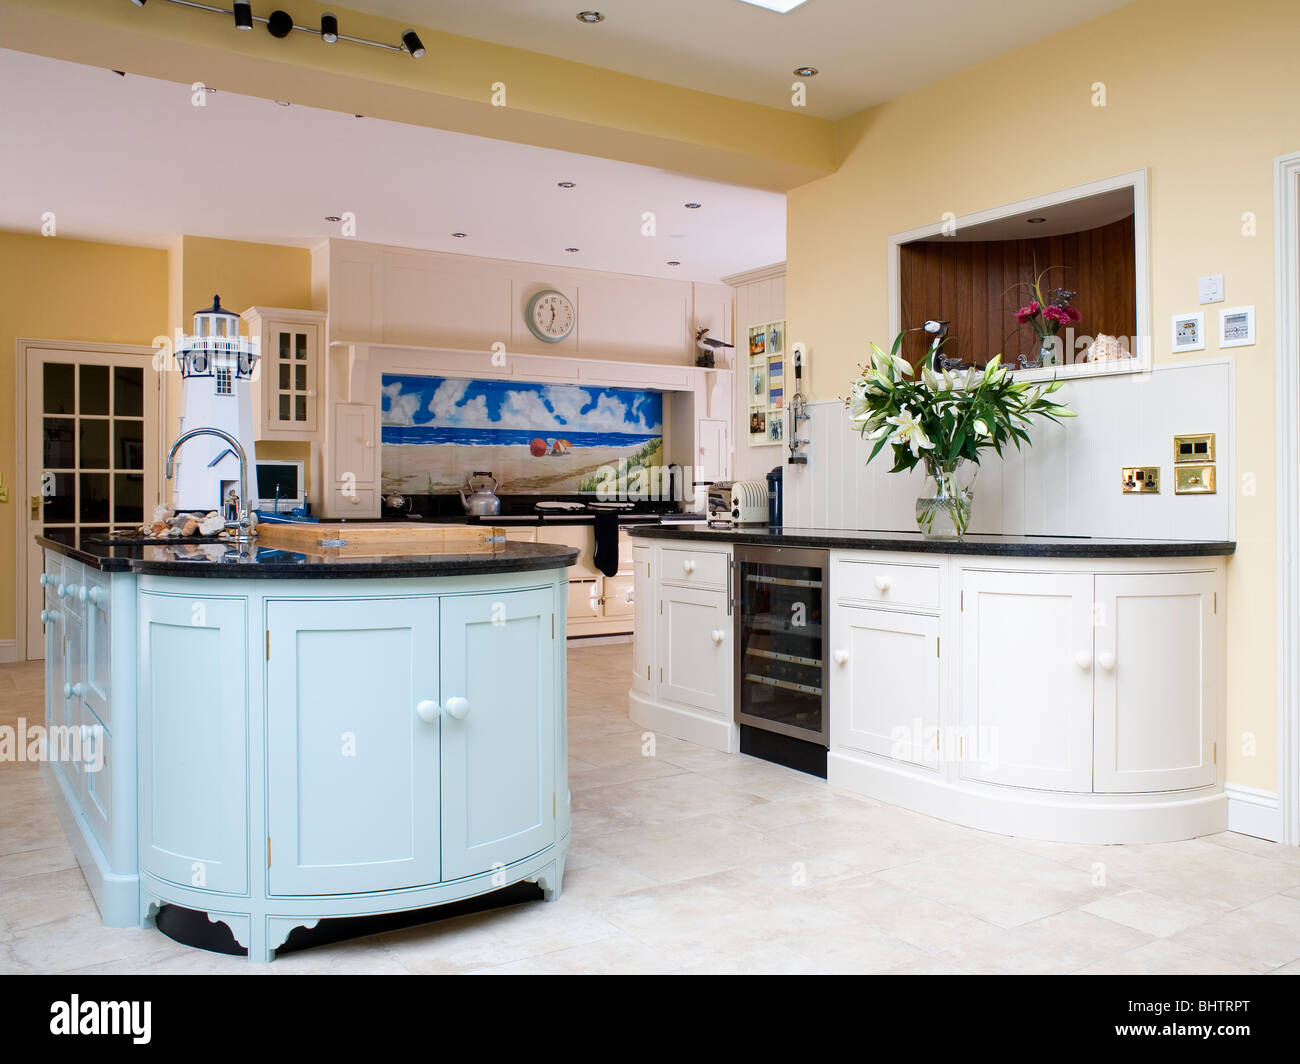 Pastel blue island unit in large pale yellow kitchen extension with on blue white kitchen cabinets, dark pewter kitchen cabinets, blue colored kitchen cabinets, blue two-toned kitchen cabinets, blue shabby chic kitchen cabinets, blue black kitchen cabinets, blue glazed kitchen cabinets, blue oak kitchen cabinets, blue milk paint kitchen cabinets, blue with yellow kitchen cabinets, blue stained wood kitchen cabinets, blue wash kitchen cabinets, blue brown kitchen cabinets, blue green kitchen cabinets, blue lacquer kitchen cabinets, blue frosted glass kitchen cabinets, blue cottage kitchen cabinets, blue gray kitchen cabinets, blue pine kitchen cabinets,